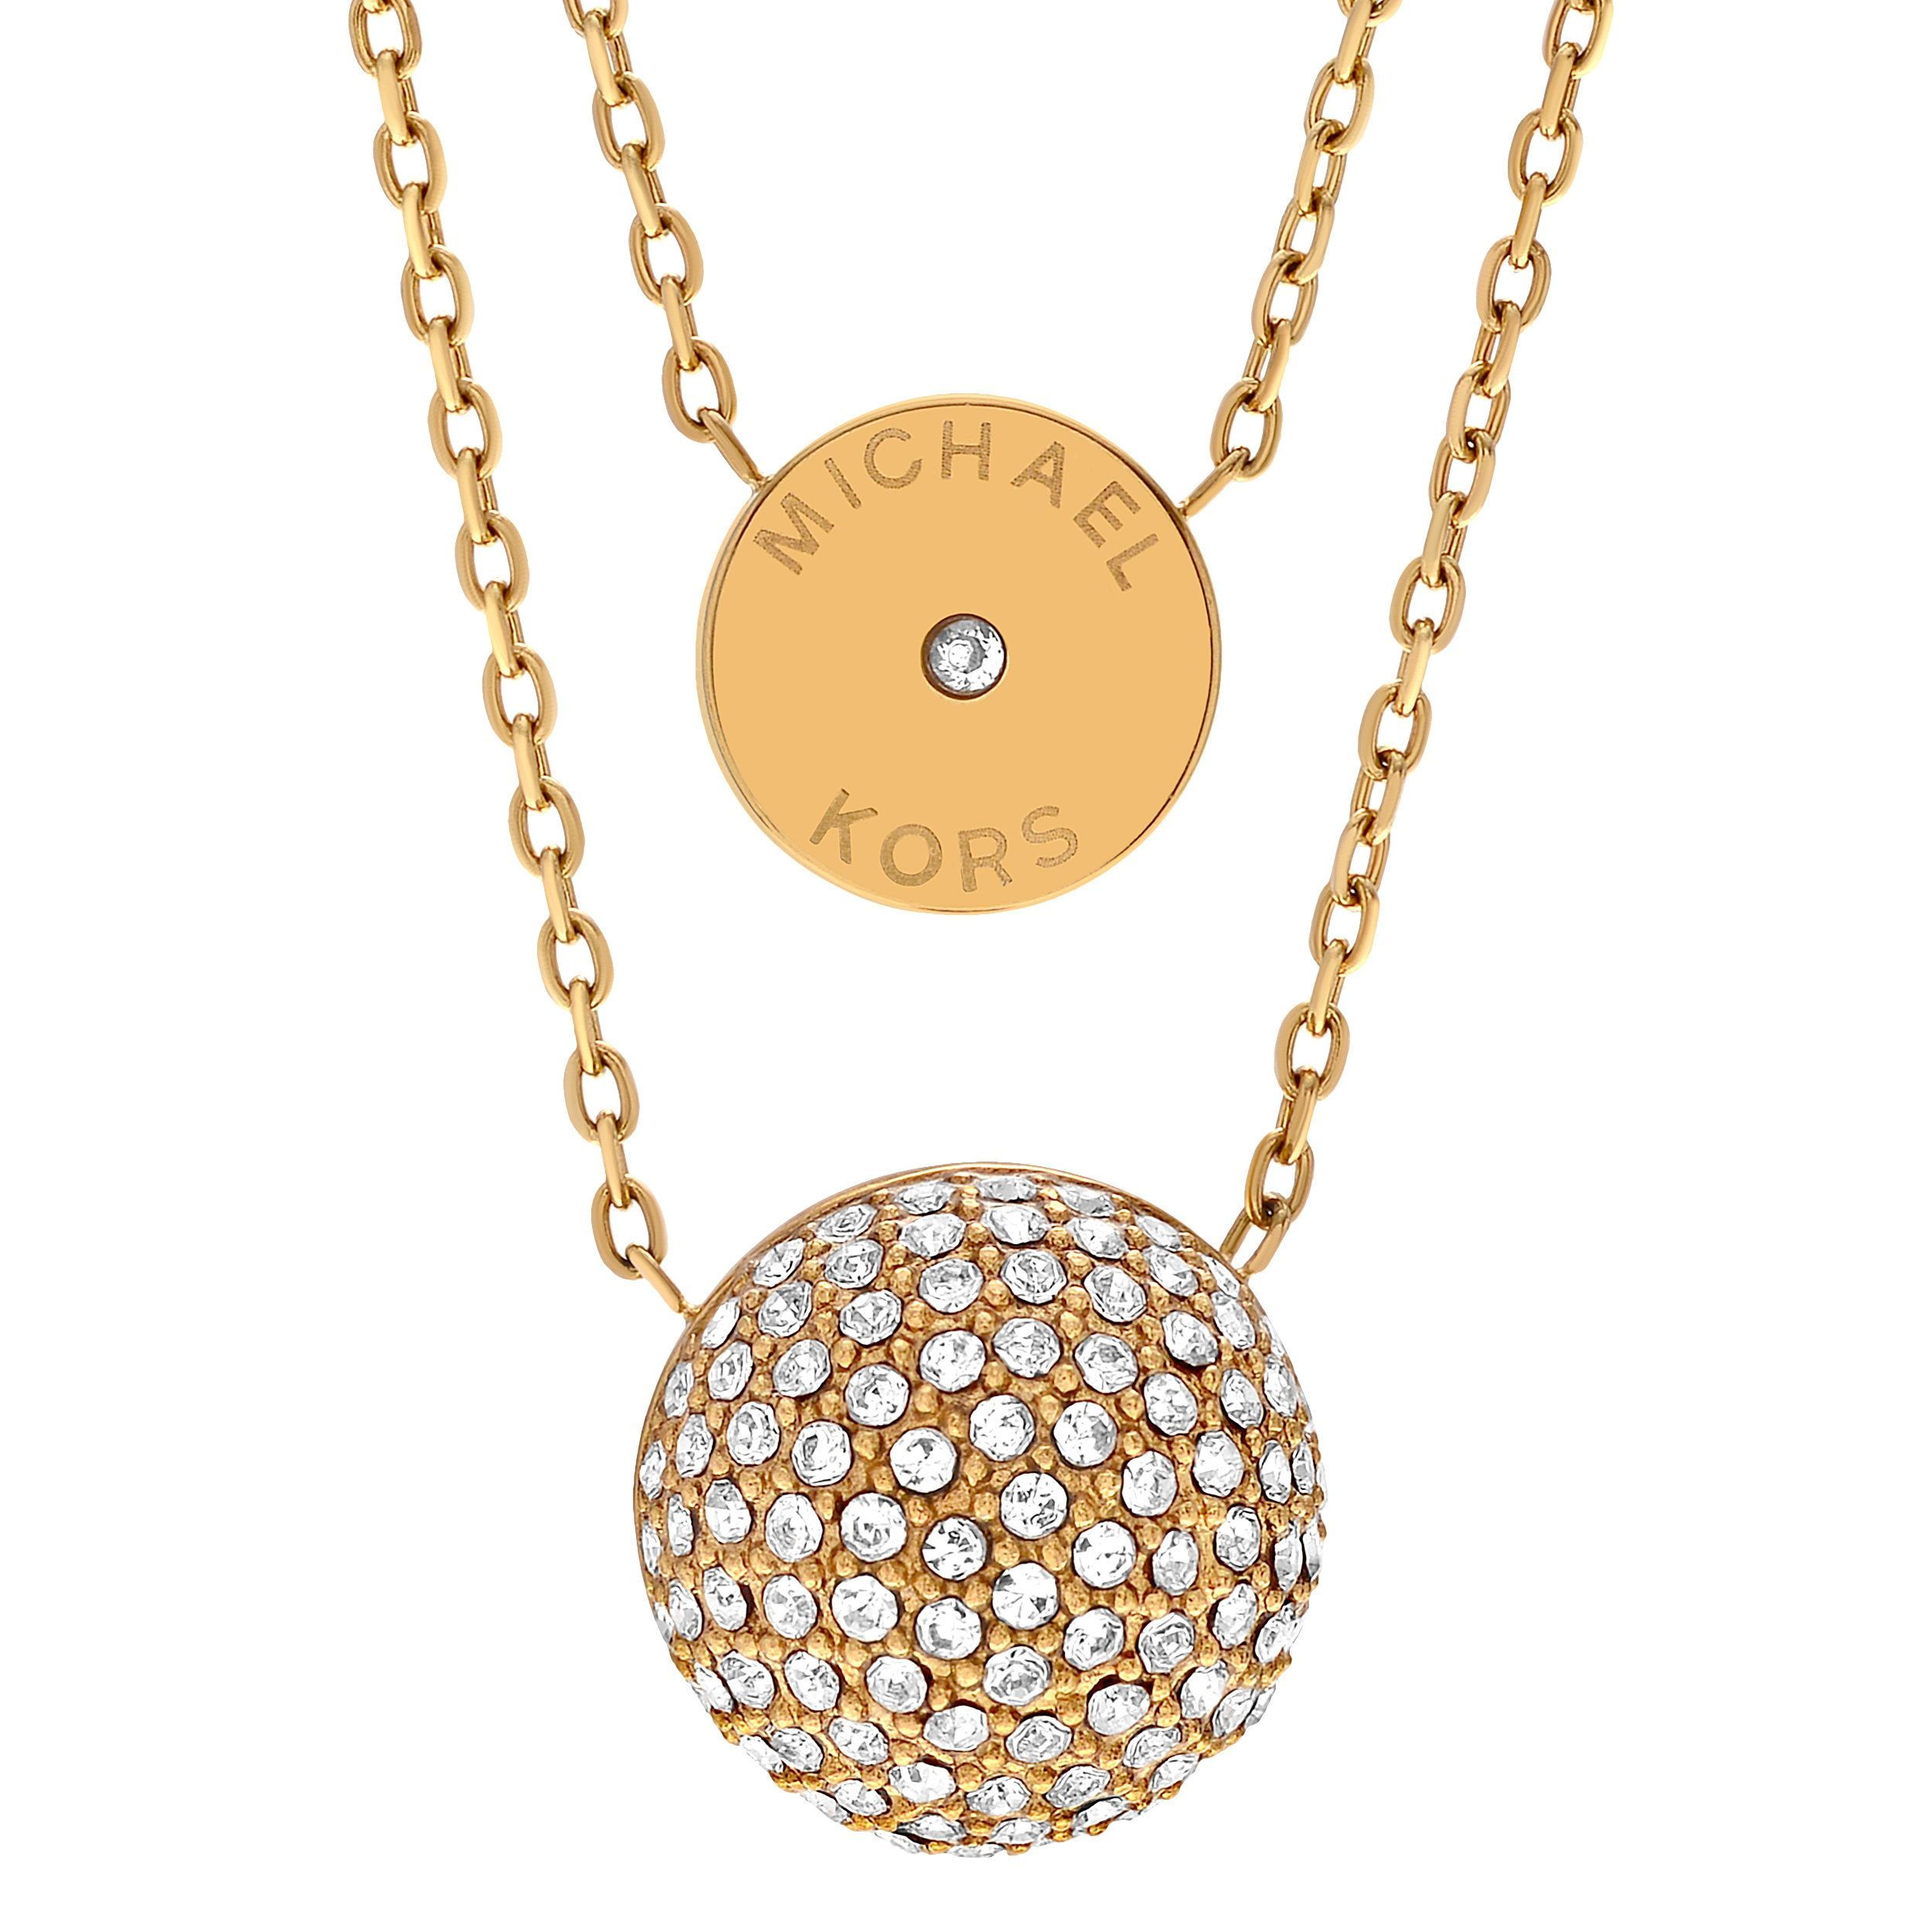 Michael Kors Goldtone Stainless Steel Crystal Accent Dual Chain Necklace (Gold), Size 18 Inch